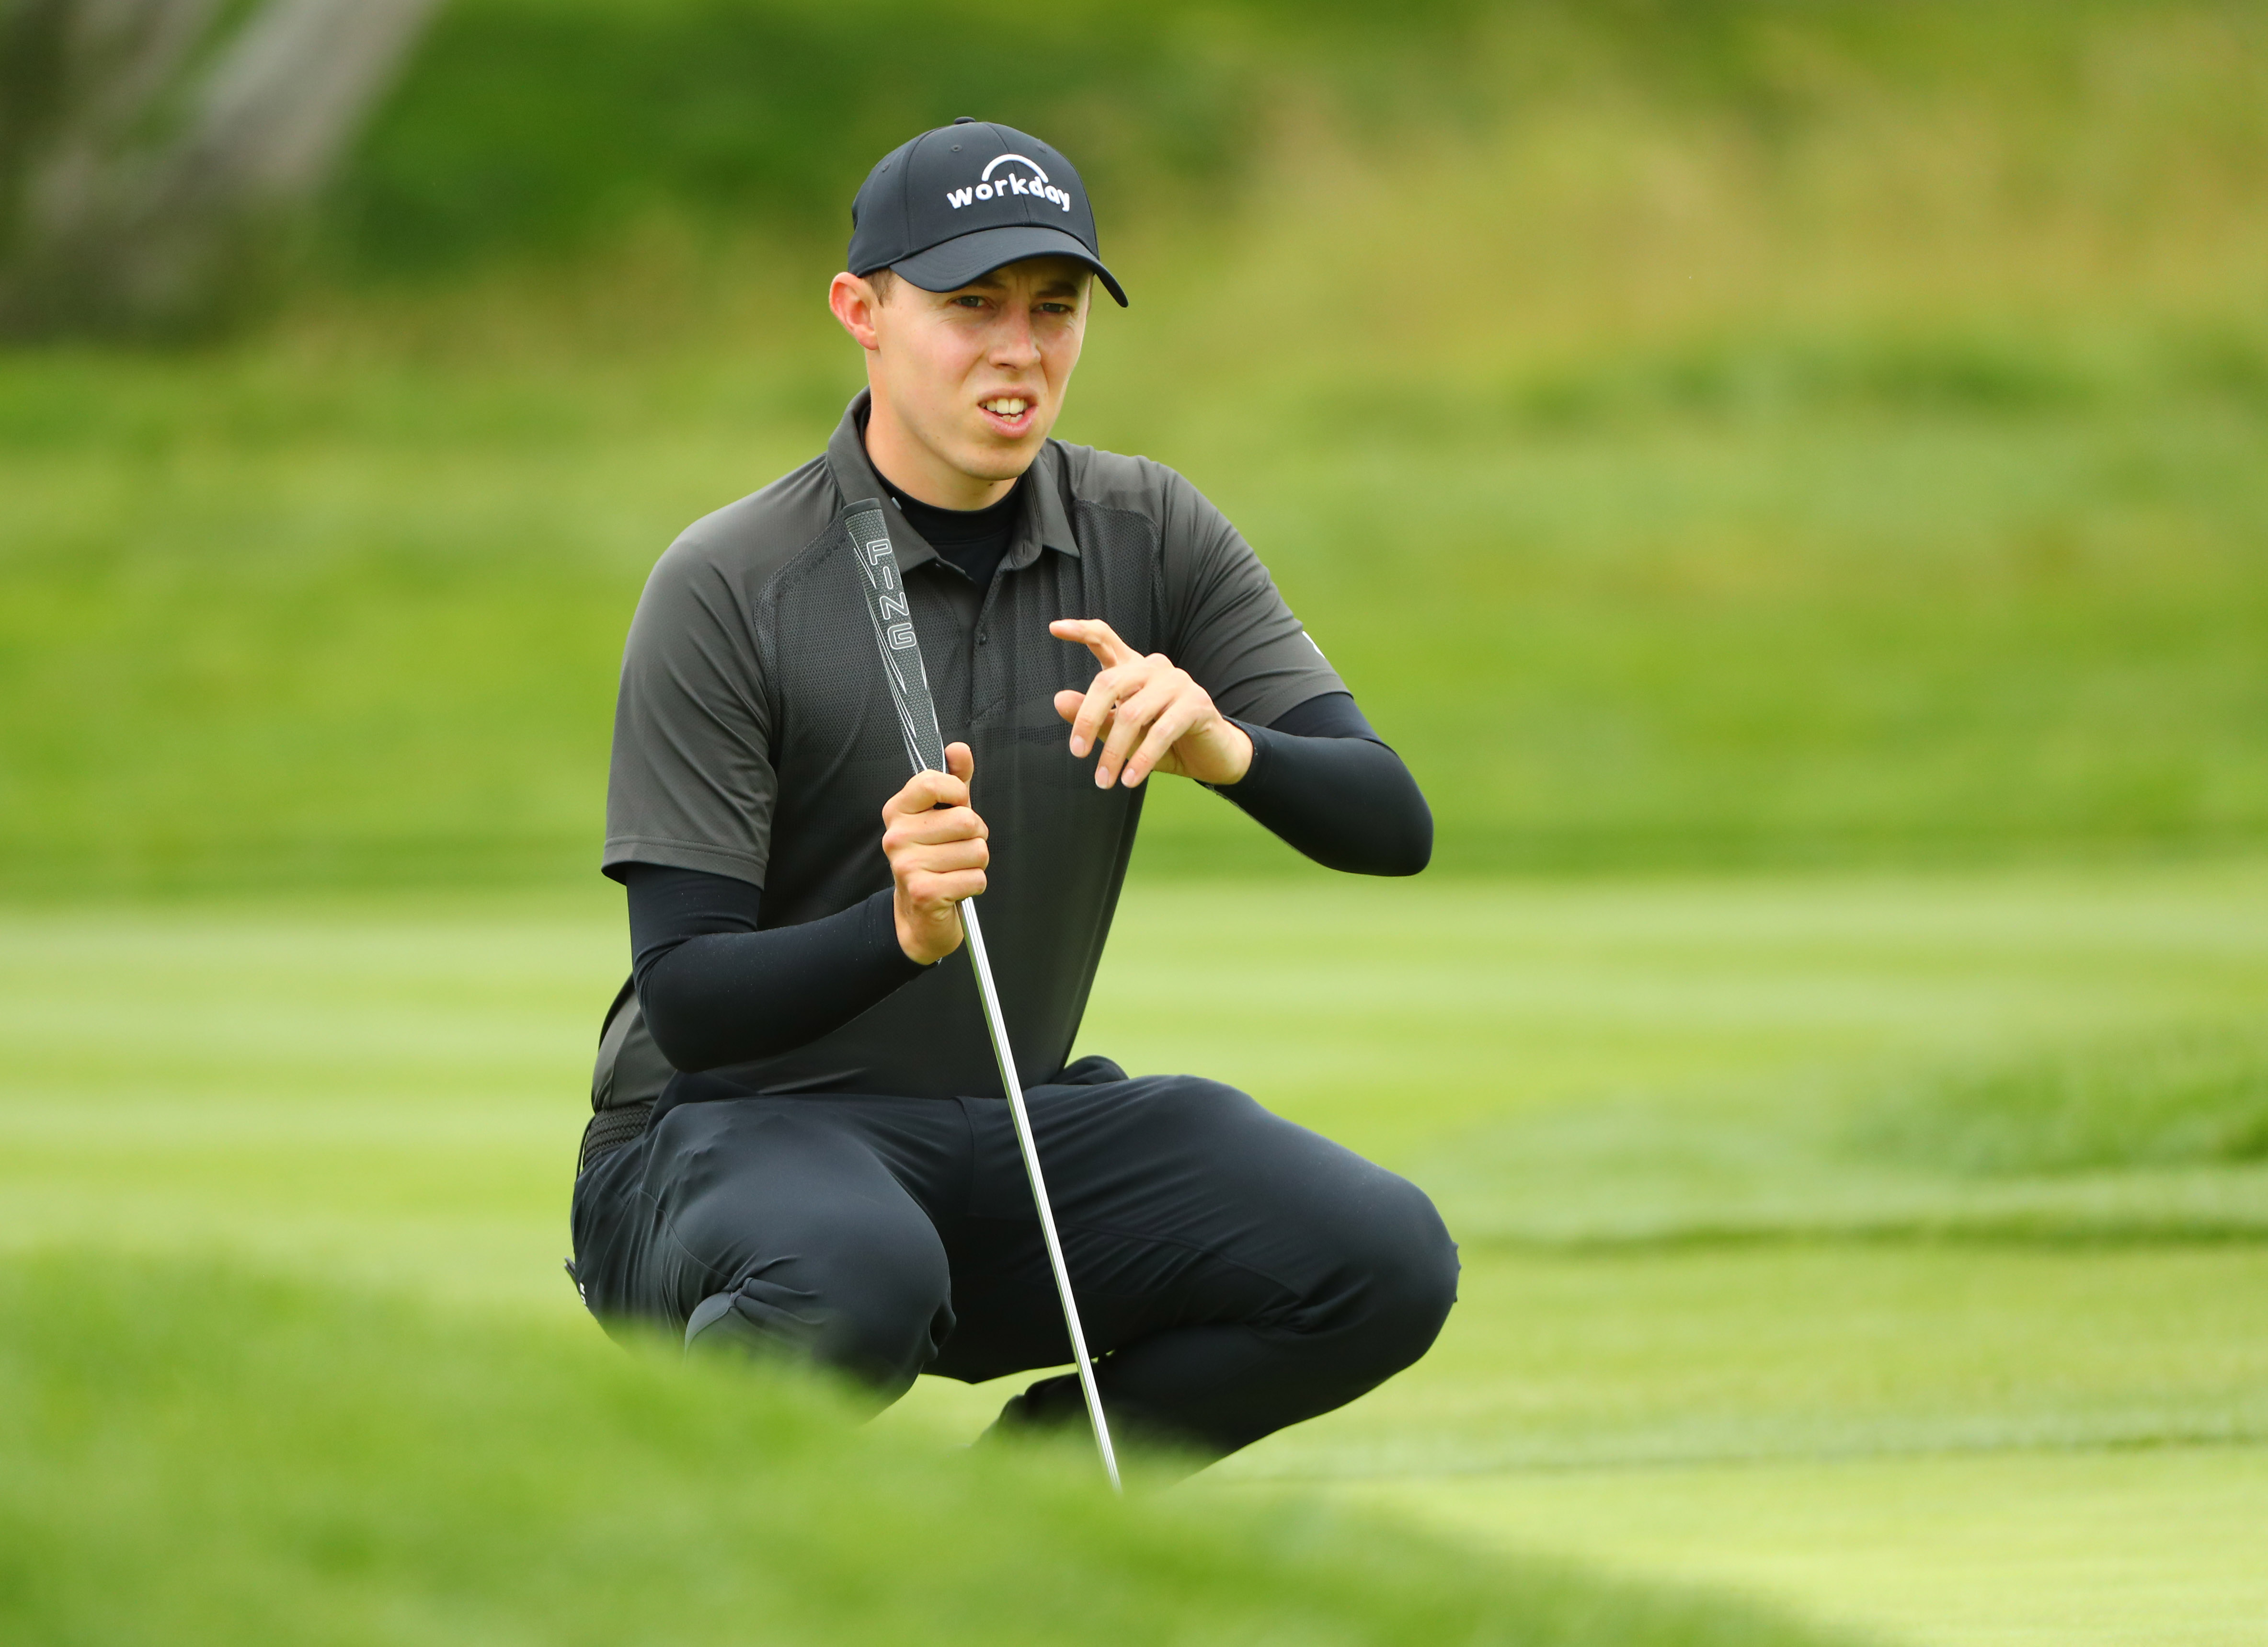 Matthew Fitzpatrick leads after second round of 2019 WGC HSBC Champions event in Shanghai